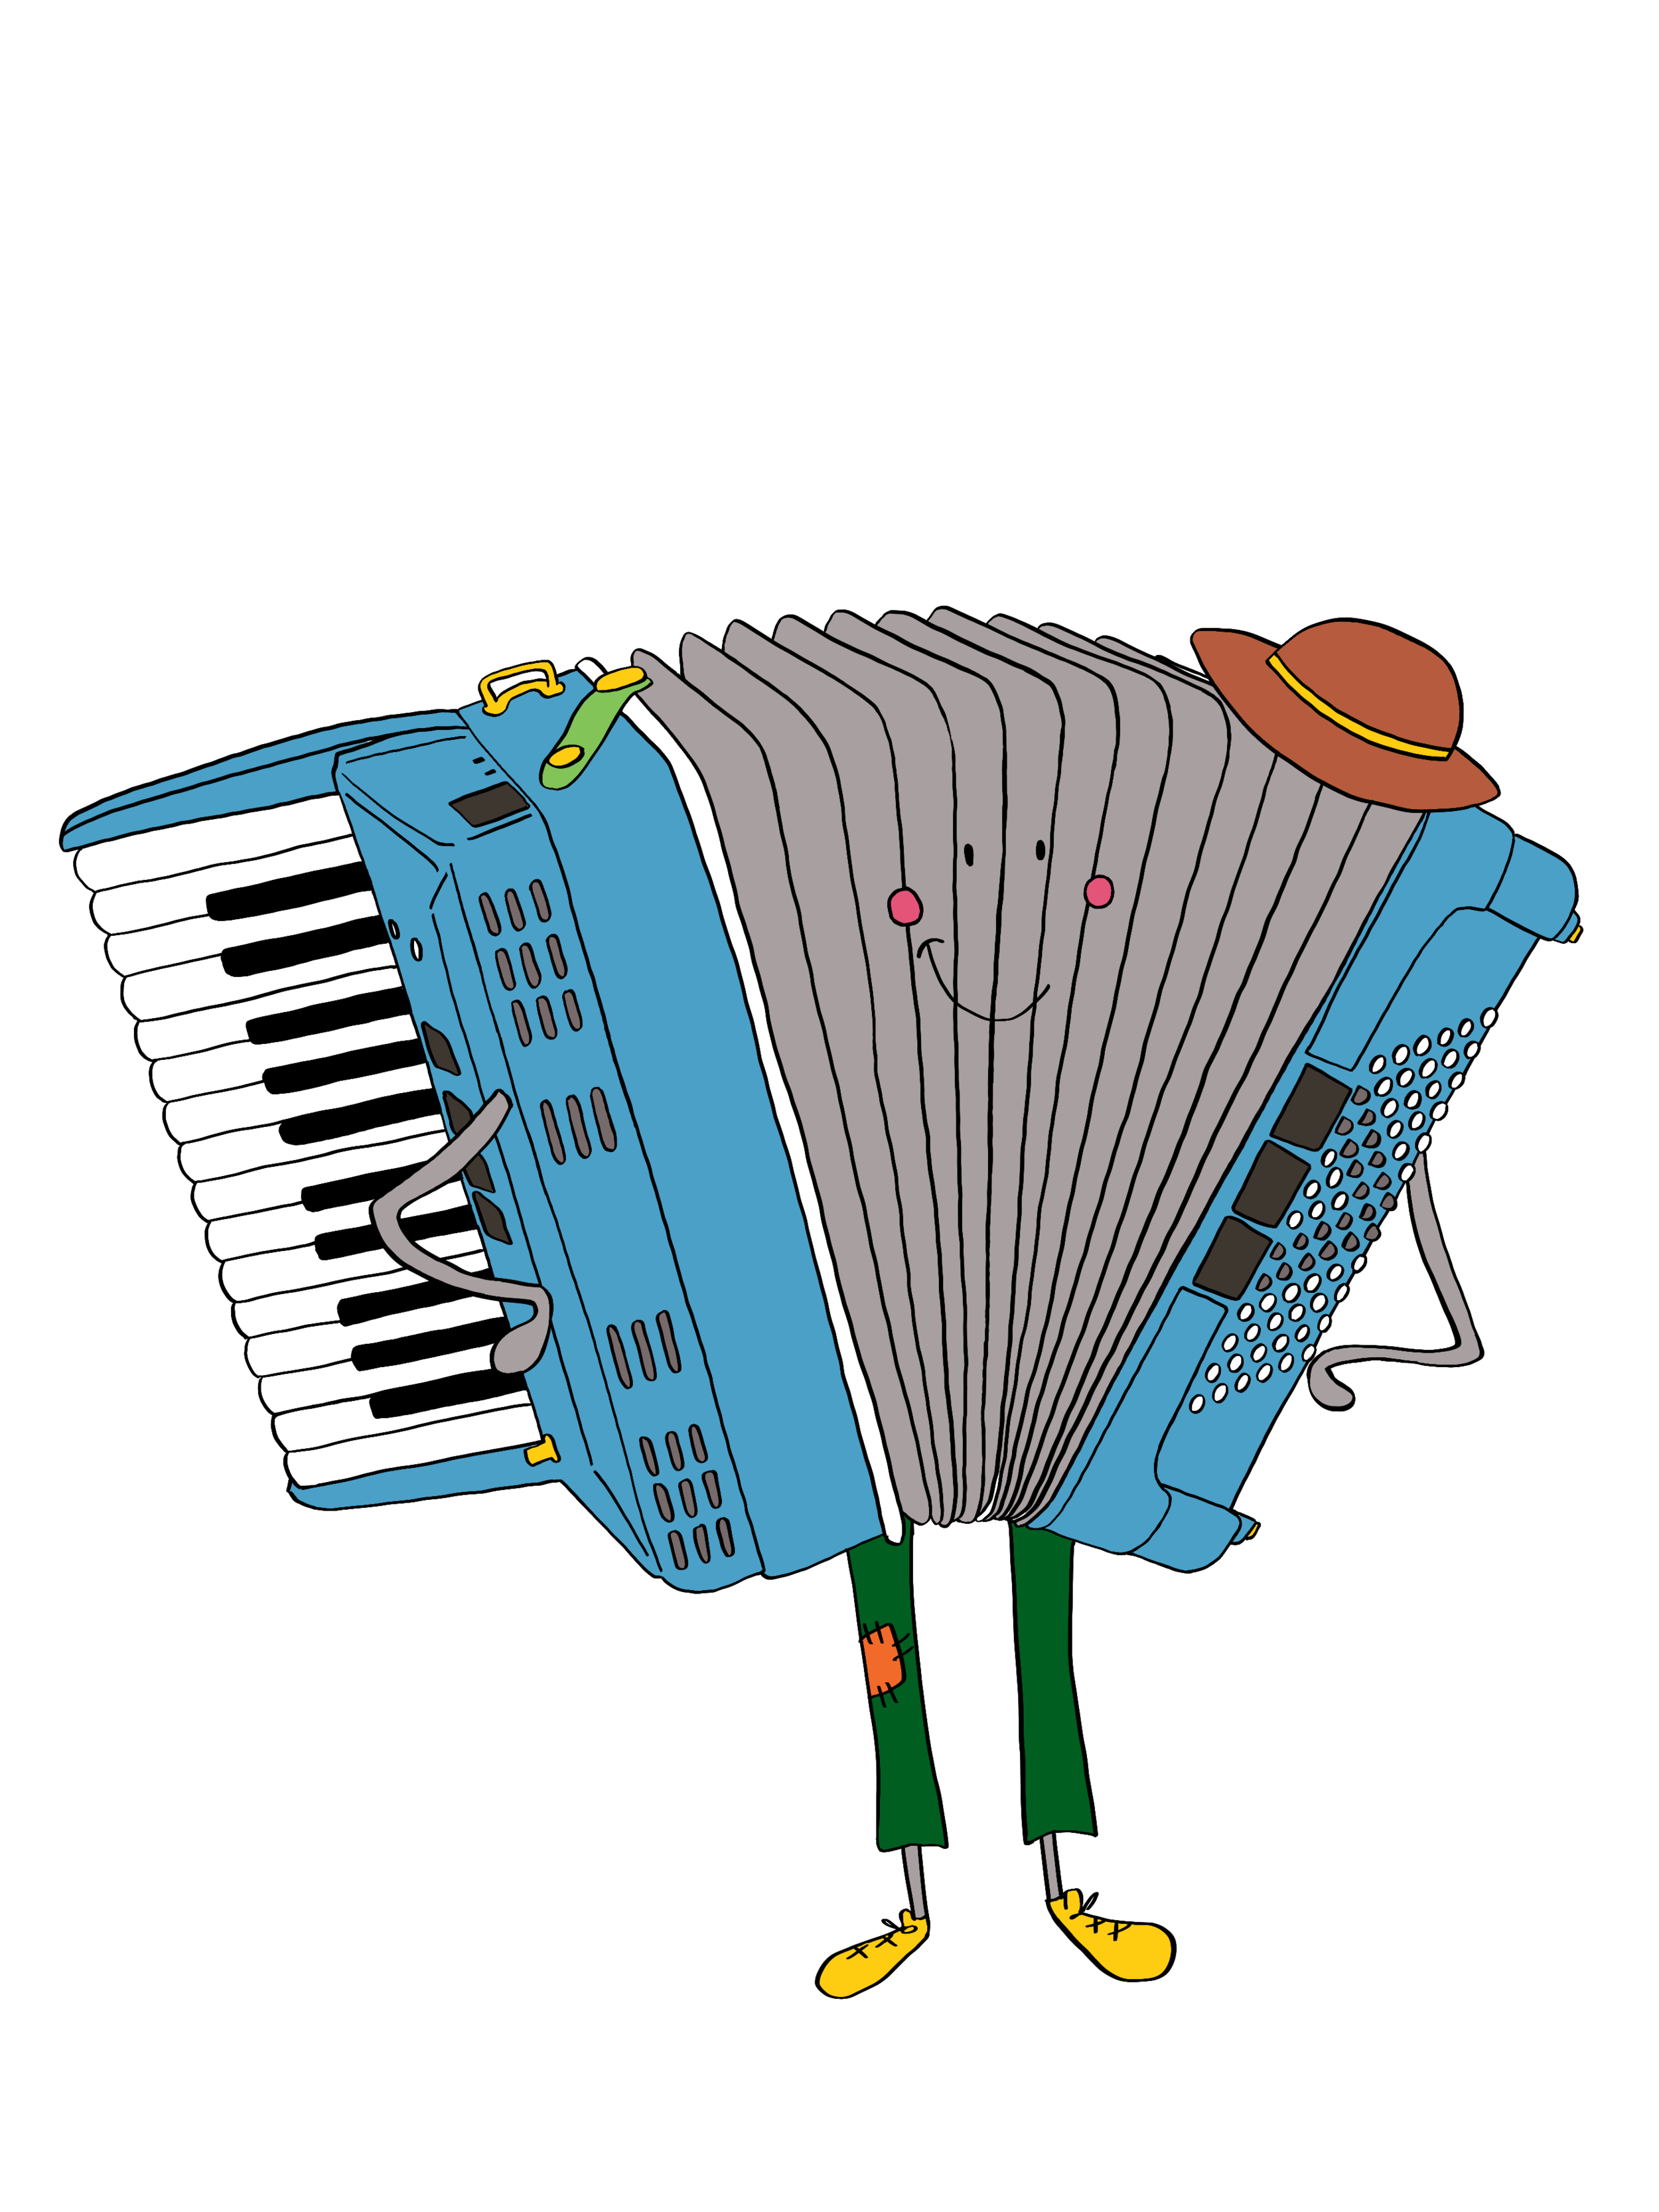 - Carnival Zoo is geared to teaching pre-school children musical concepts and introducing musical instruments through interactive stories, games and songs. We provide online teaching resources that are accessible by computer, tablet or smart phone.